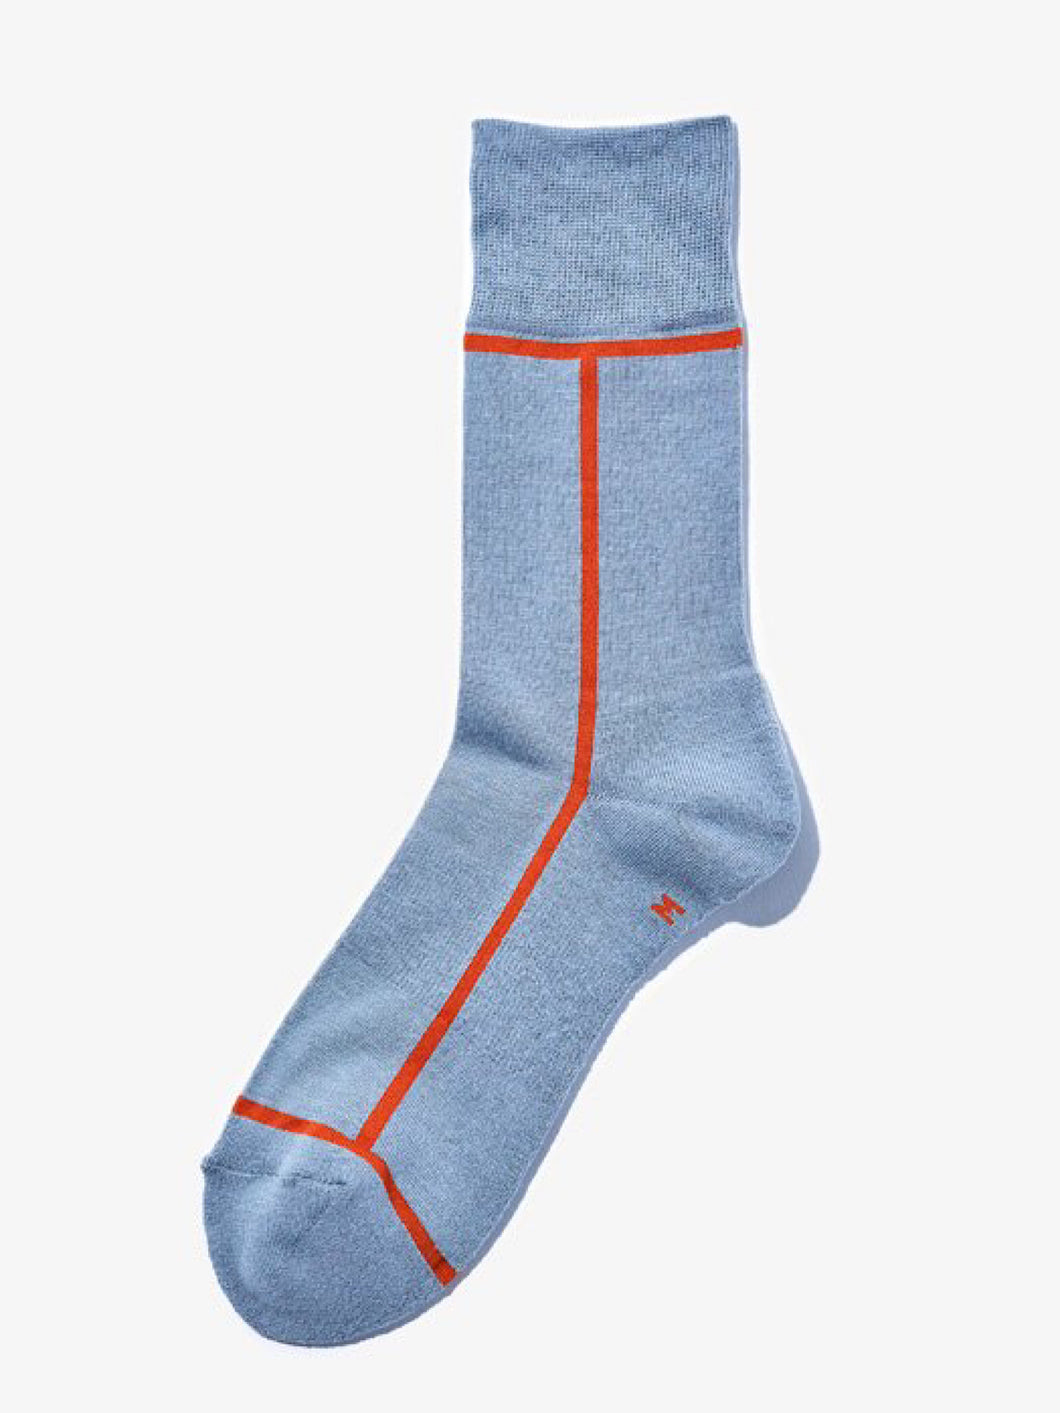 CHICSTOCKS /  LINE SOCKS(SHADOW BLUE×ORANGE)